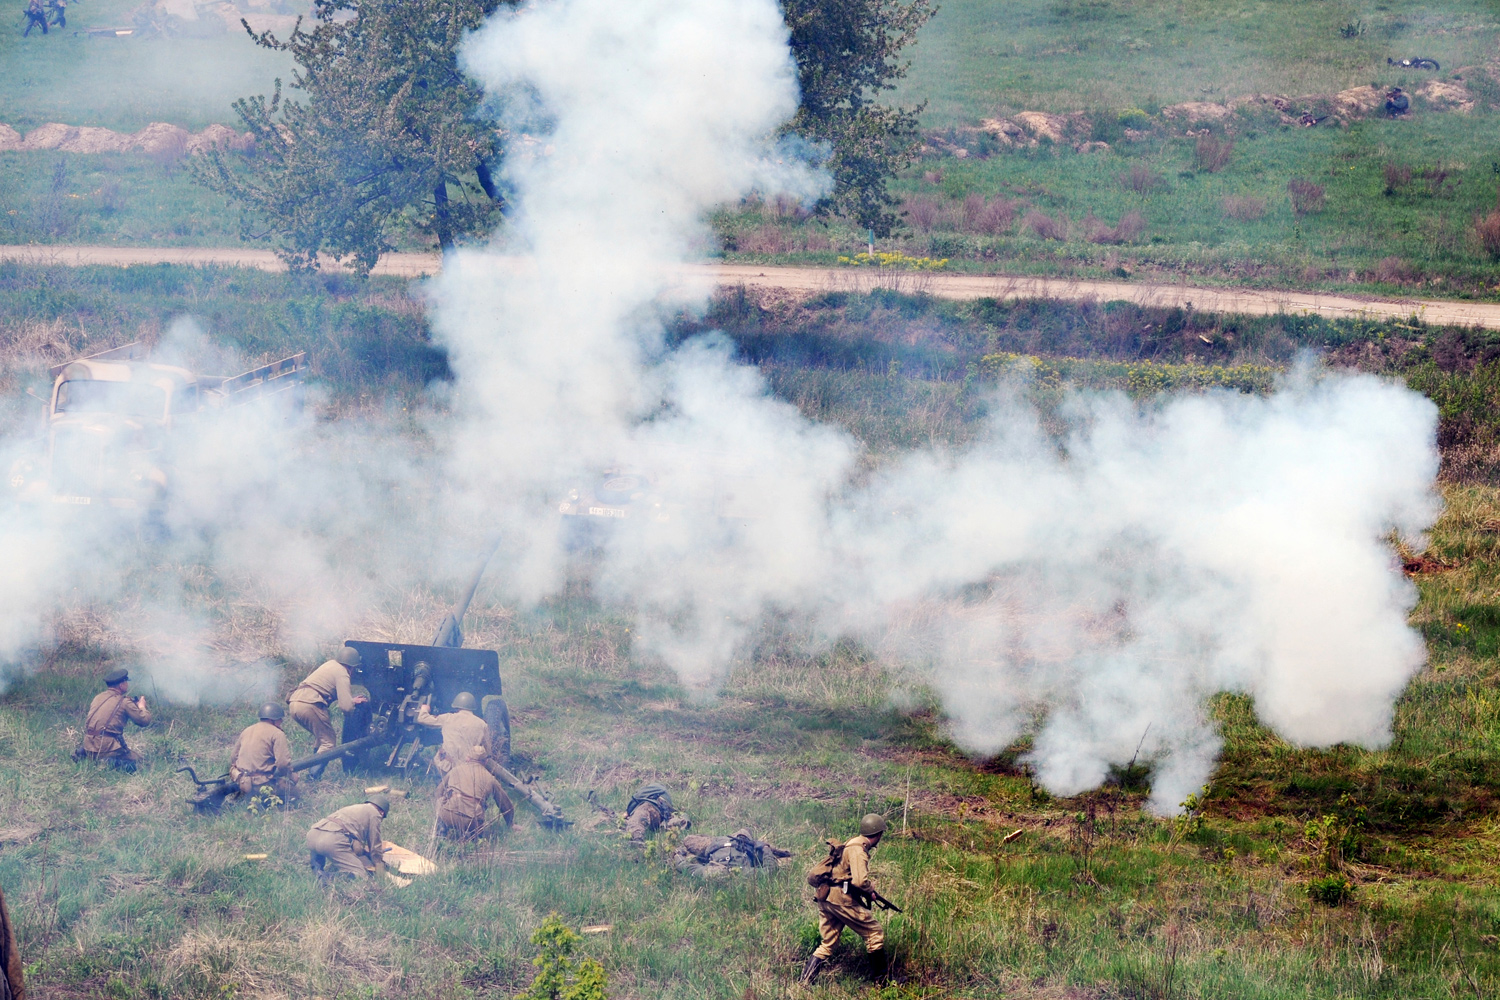 May 8, 2011. Members of military historical clubs, dressed in military uniforms, re-enact a World War II battle in Kiev, Ukraine.